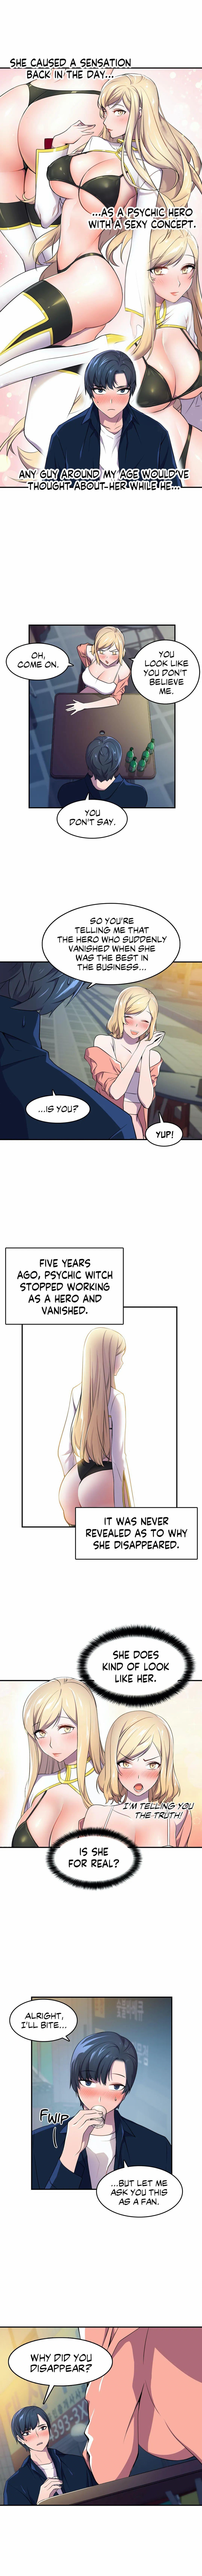 HERO MANAGER Ch. 1-16 23